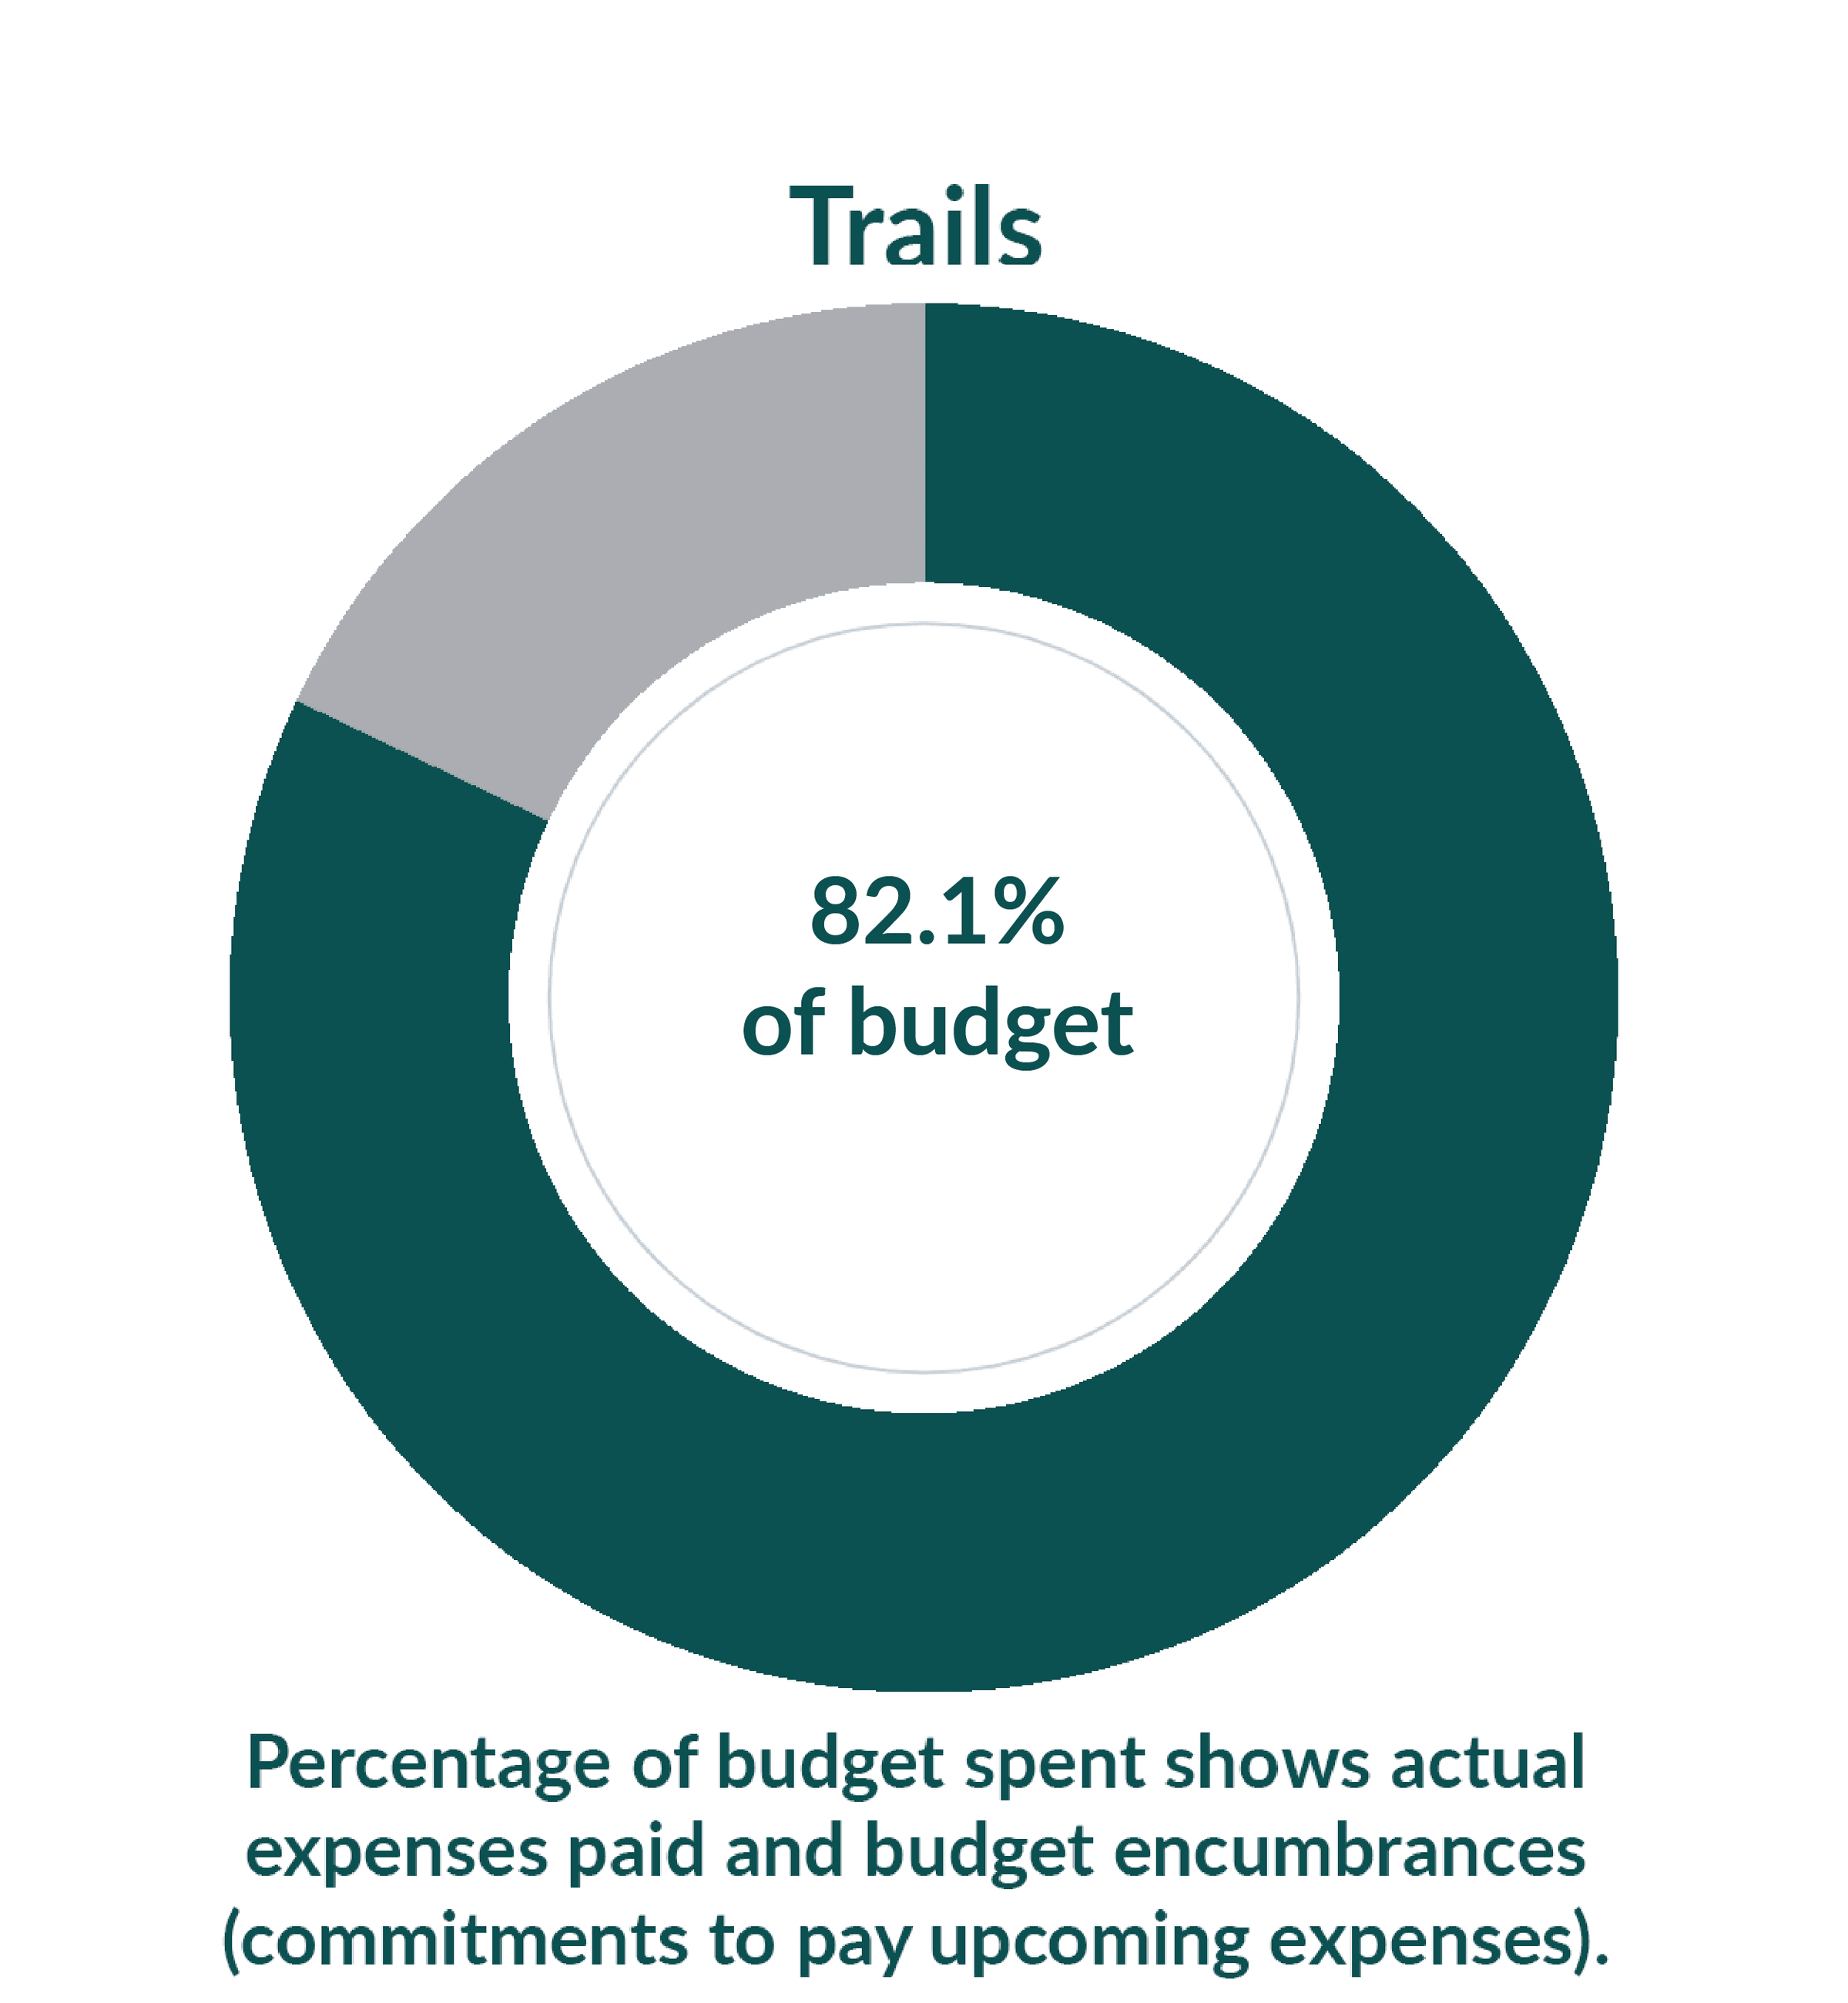 Trails: 24.3% of budget used as of September 1, 2020